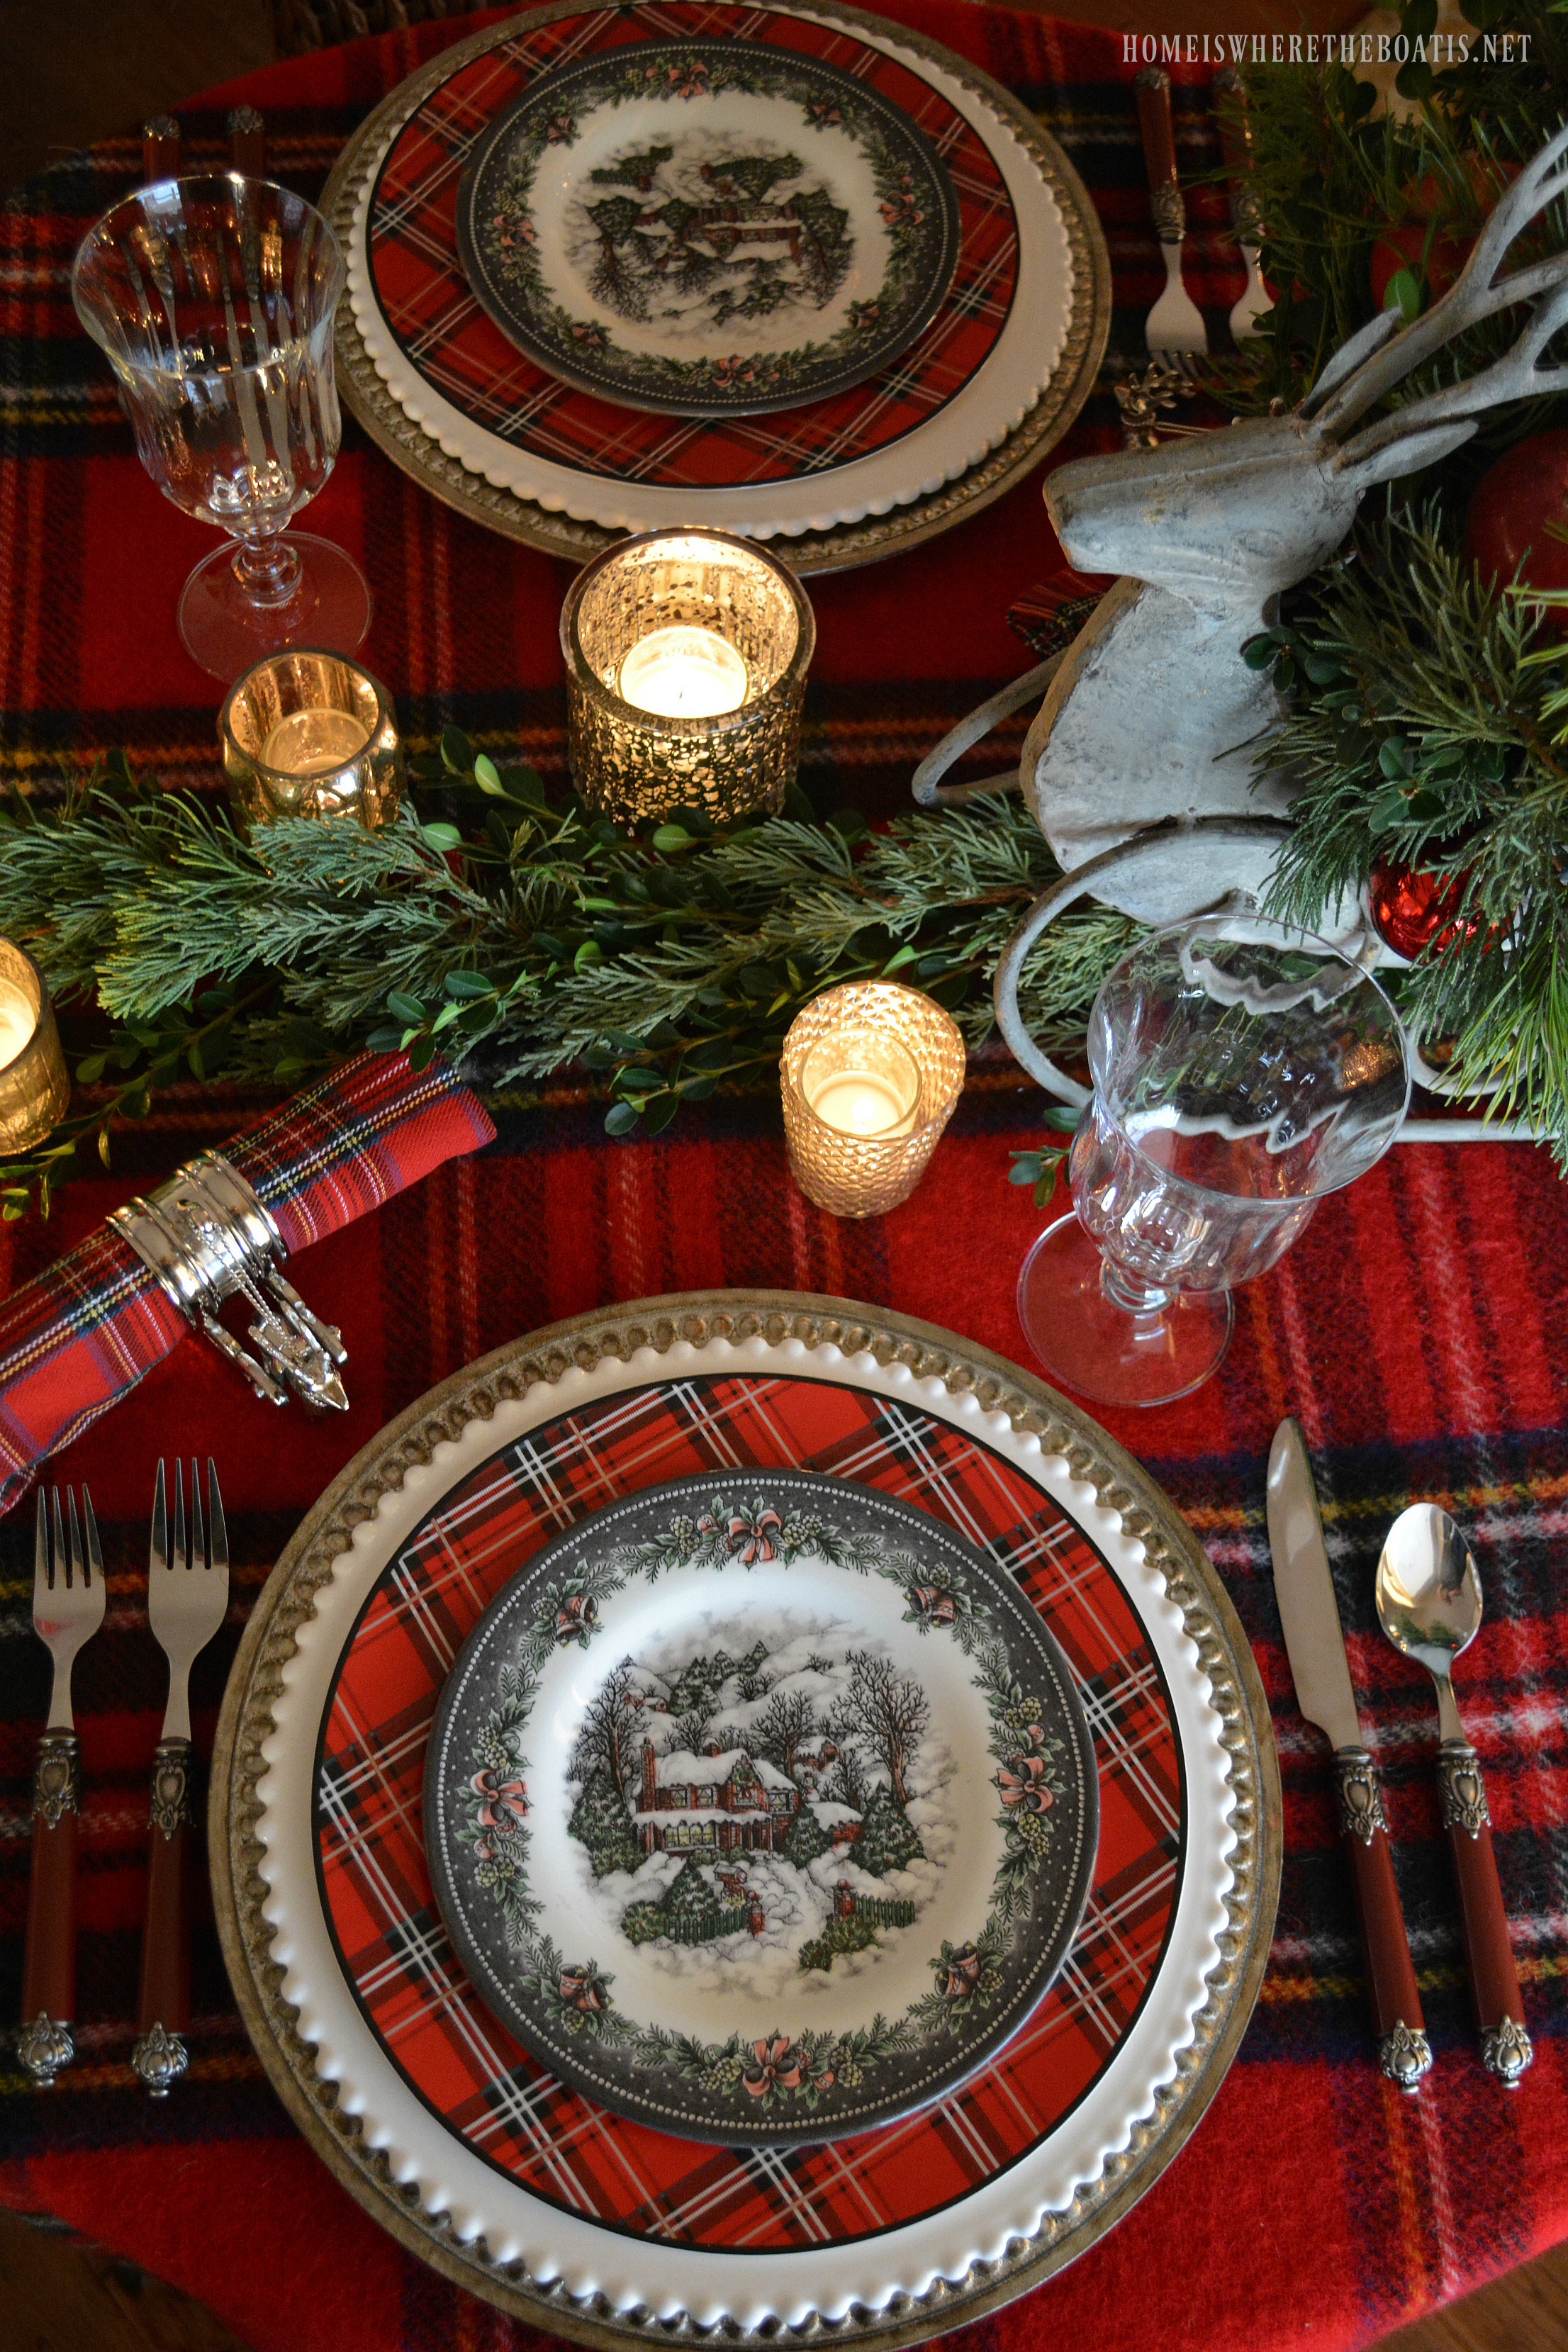 Mercury glass votives add an additional glow to the table . & Reindeer Sleigh Tartan Christmas Table and Centerpiece \u2013 Home is ...